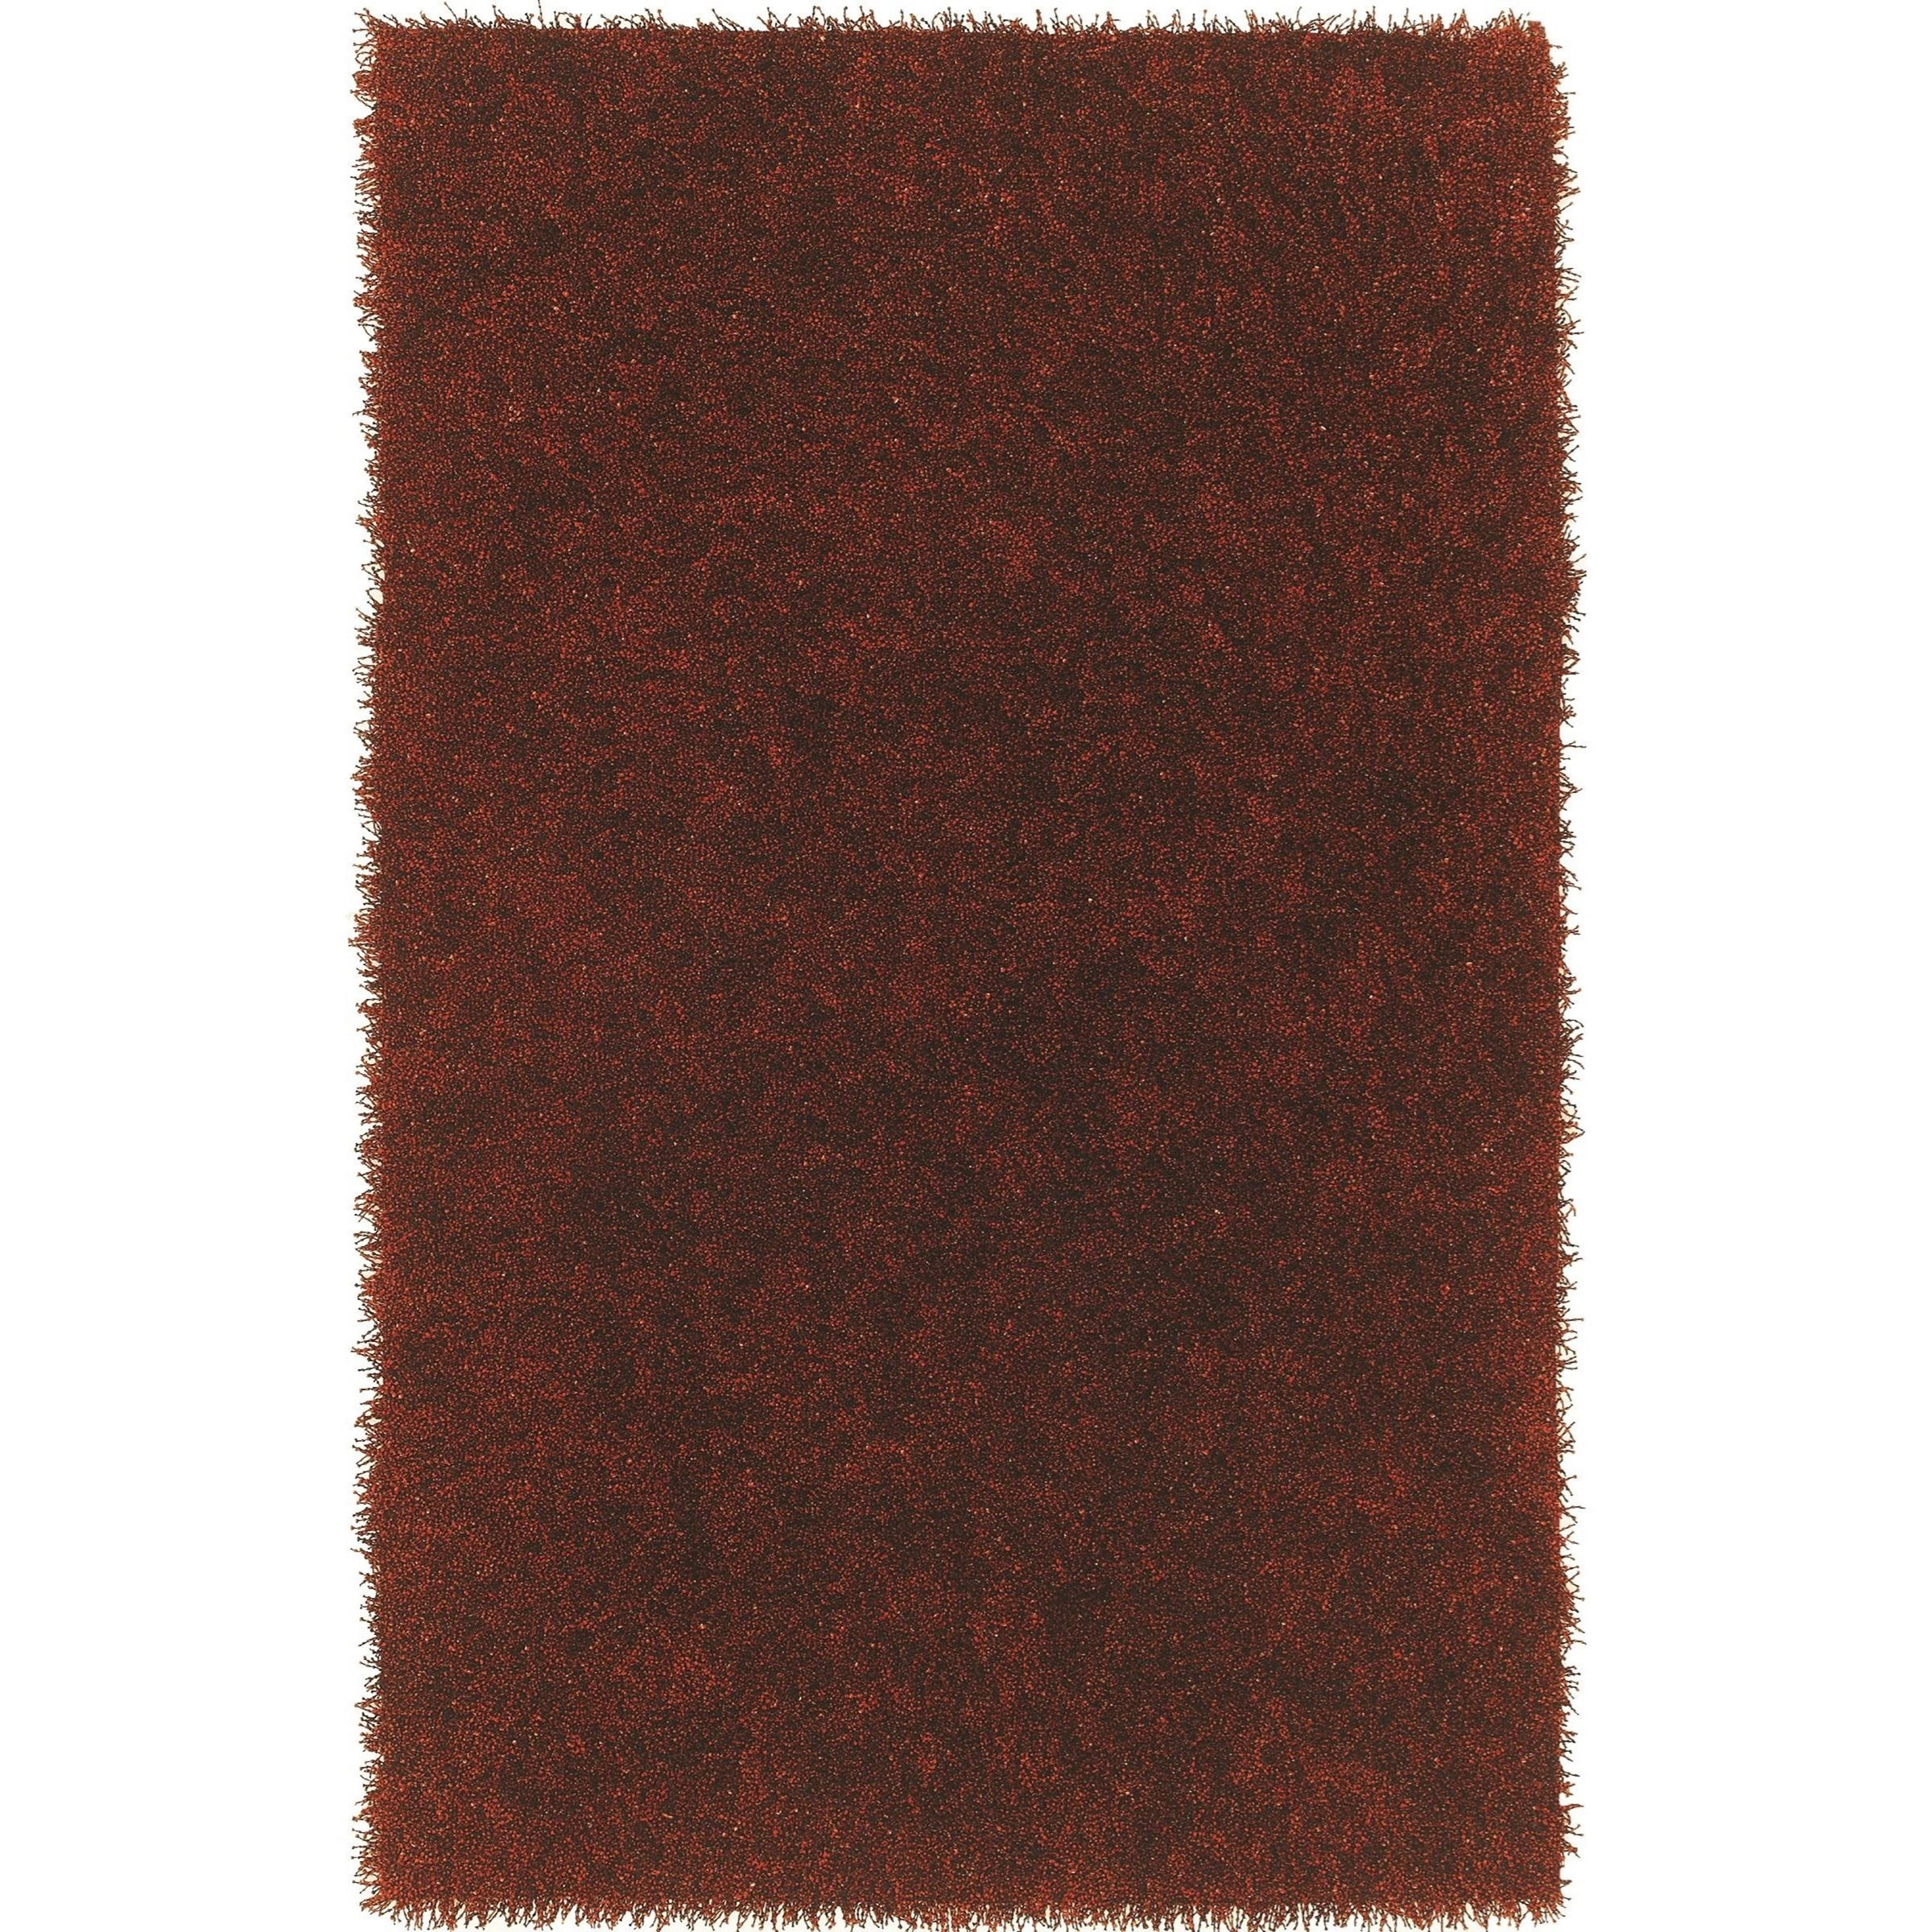 Dalyn Belize Paprika 9'X13' Rug - Item Number: BZ100PA9X13